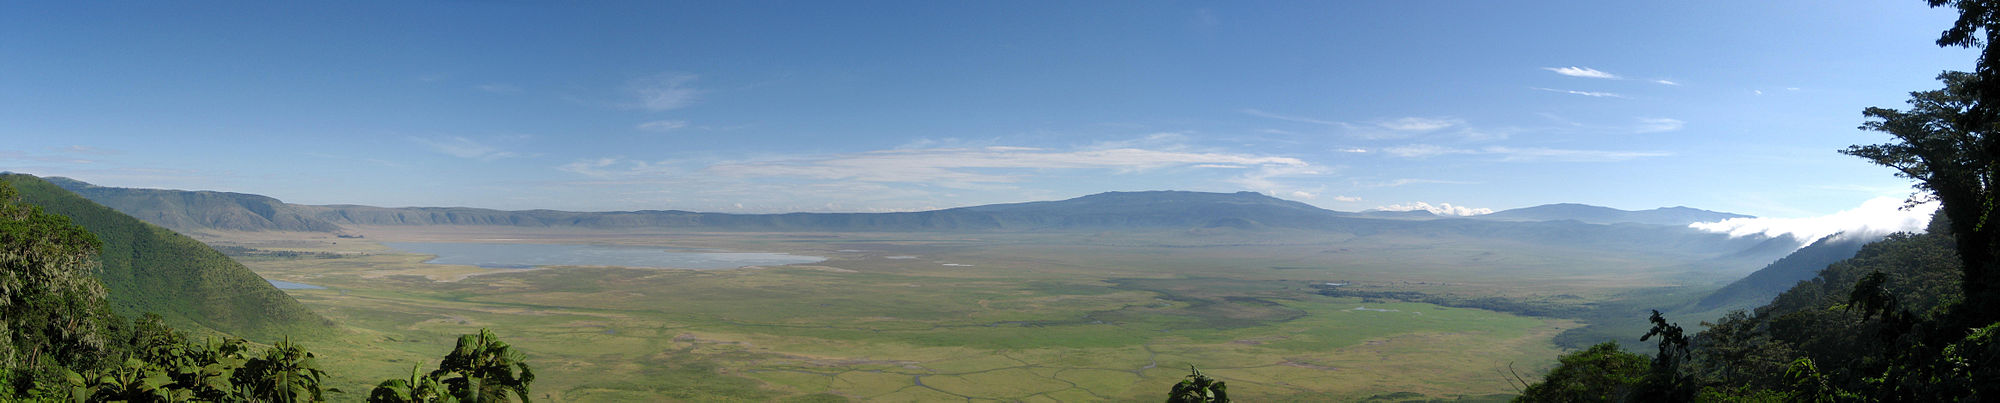 Ngorongoro Crater Panorama.jpg